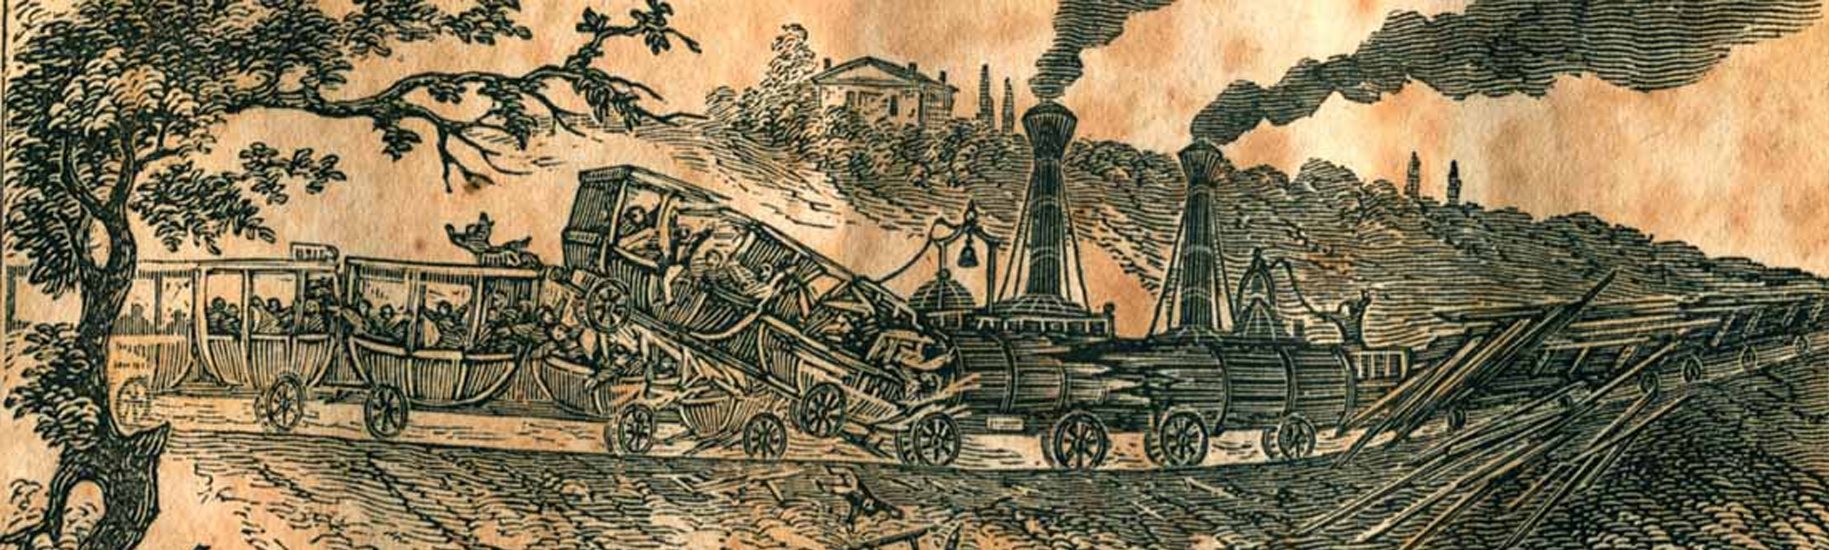 Illustration of a wagon accident